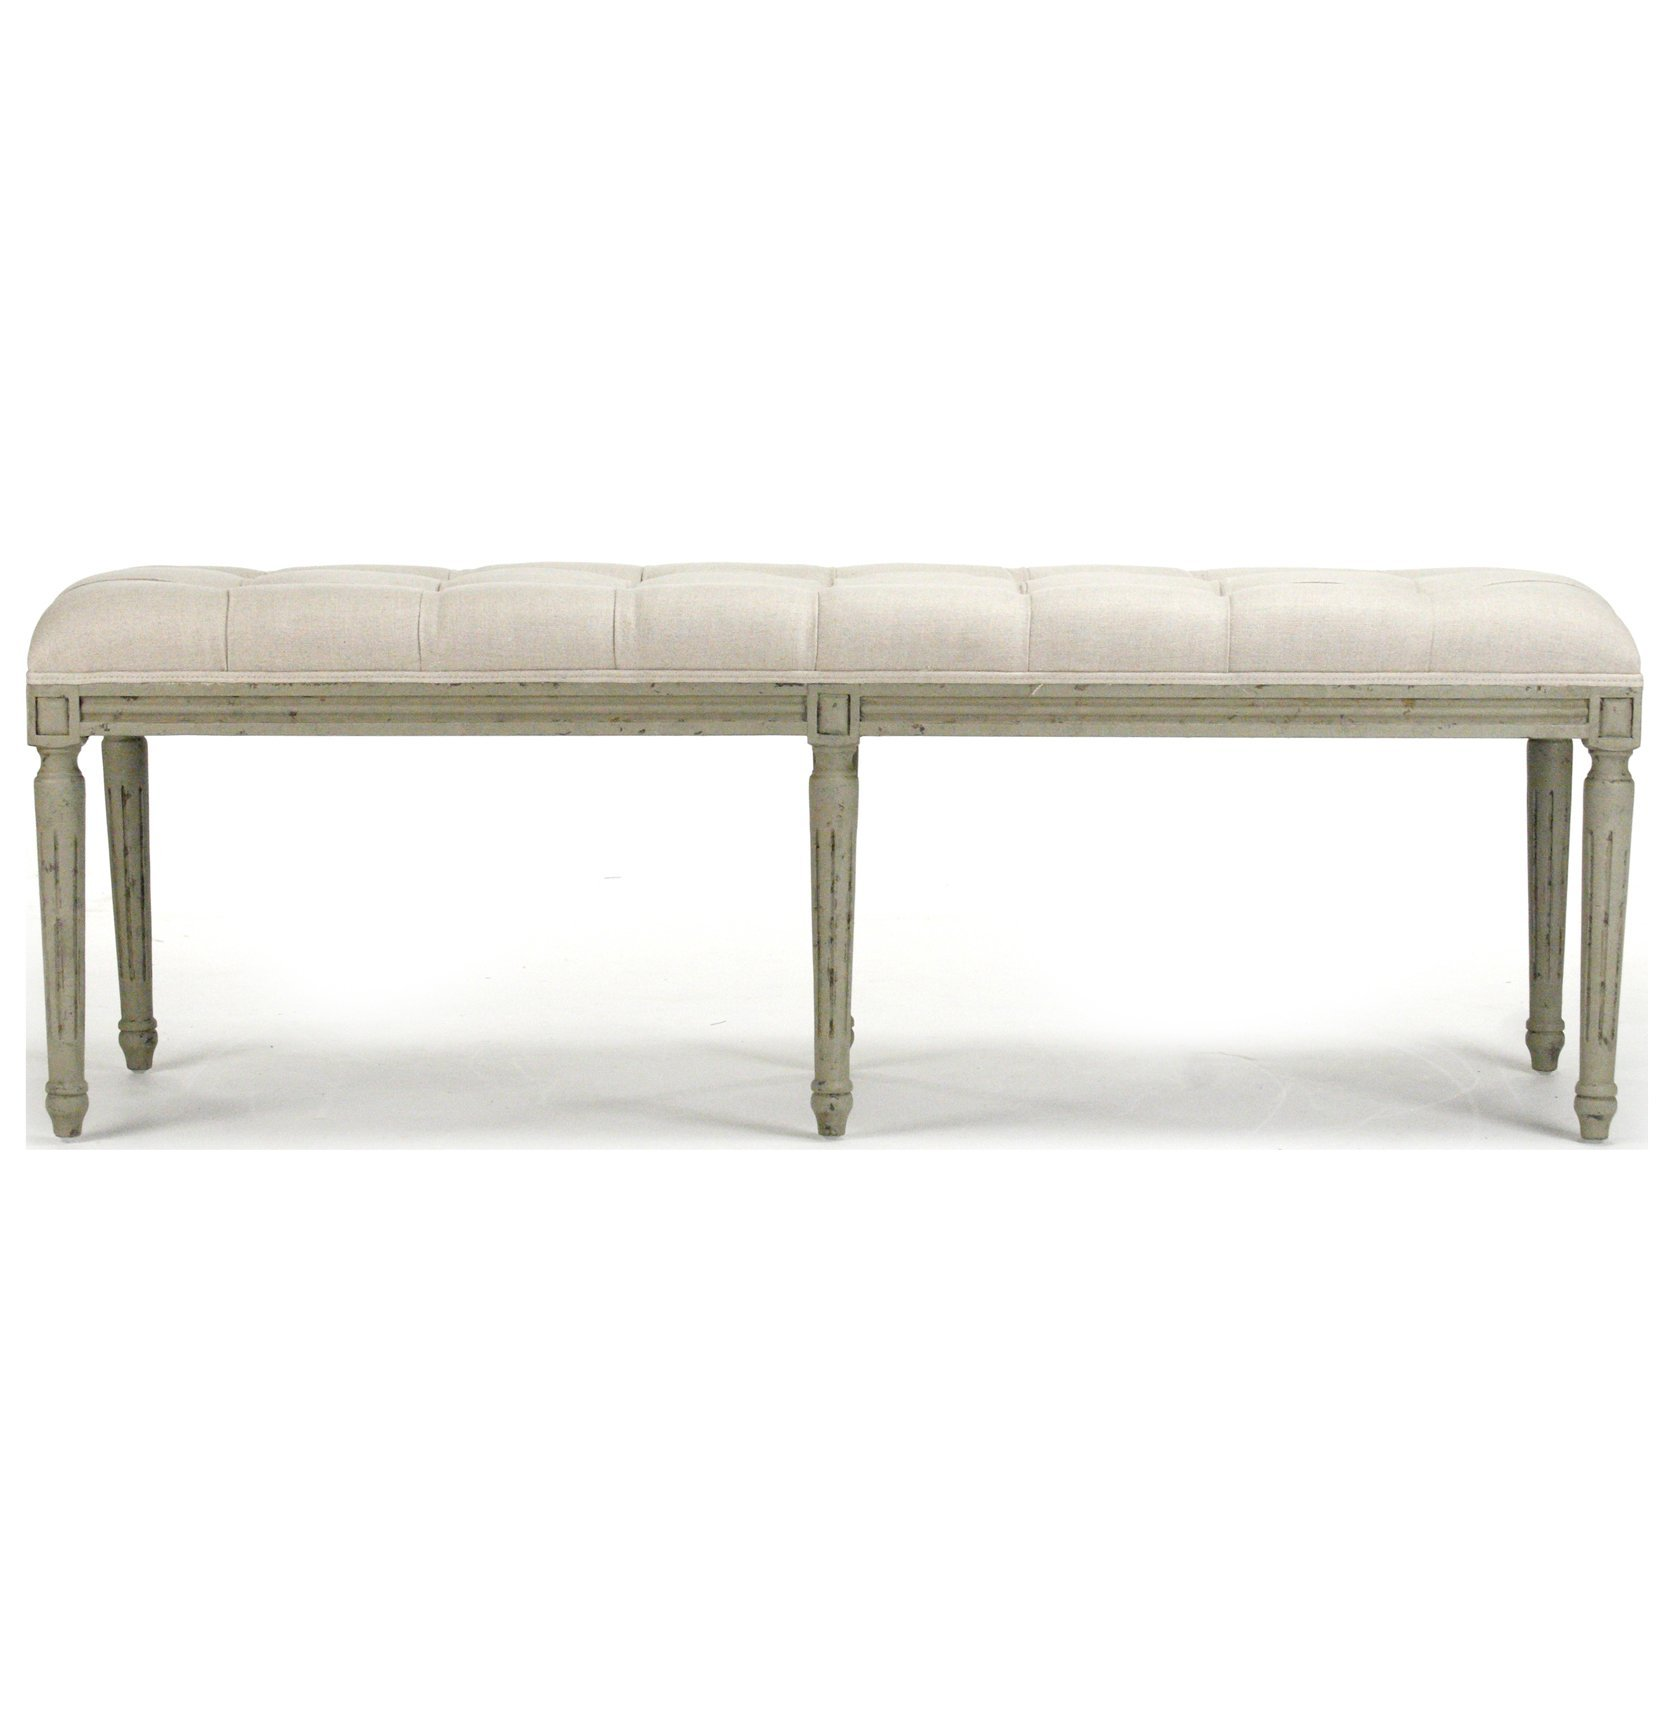 French Country Louis XVI White Tufted Oak Olive Green Long Bench